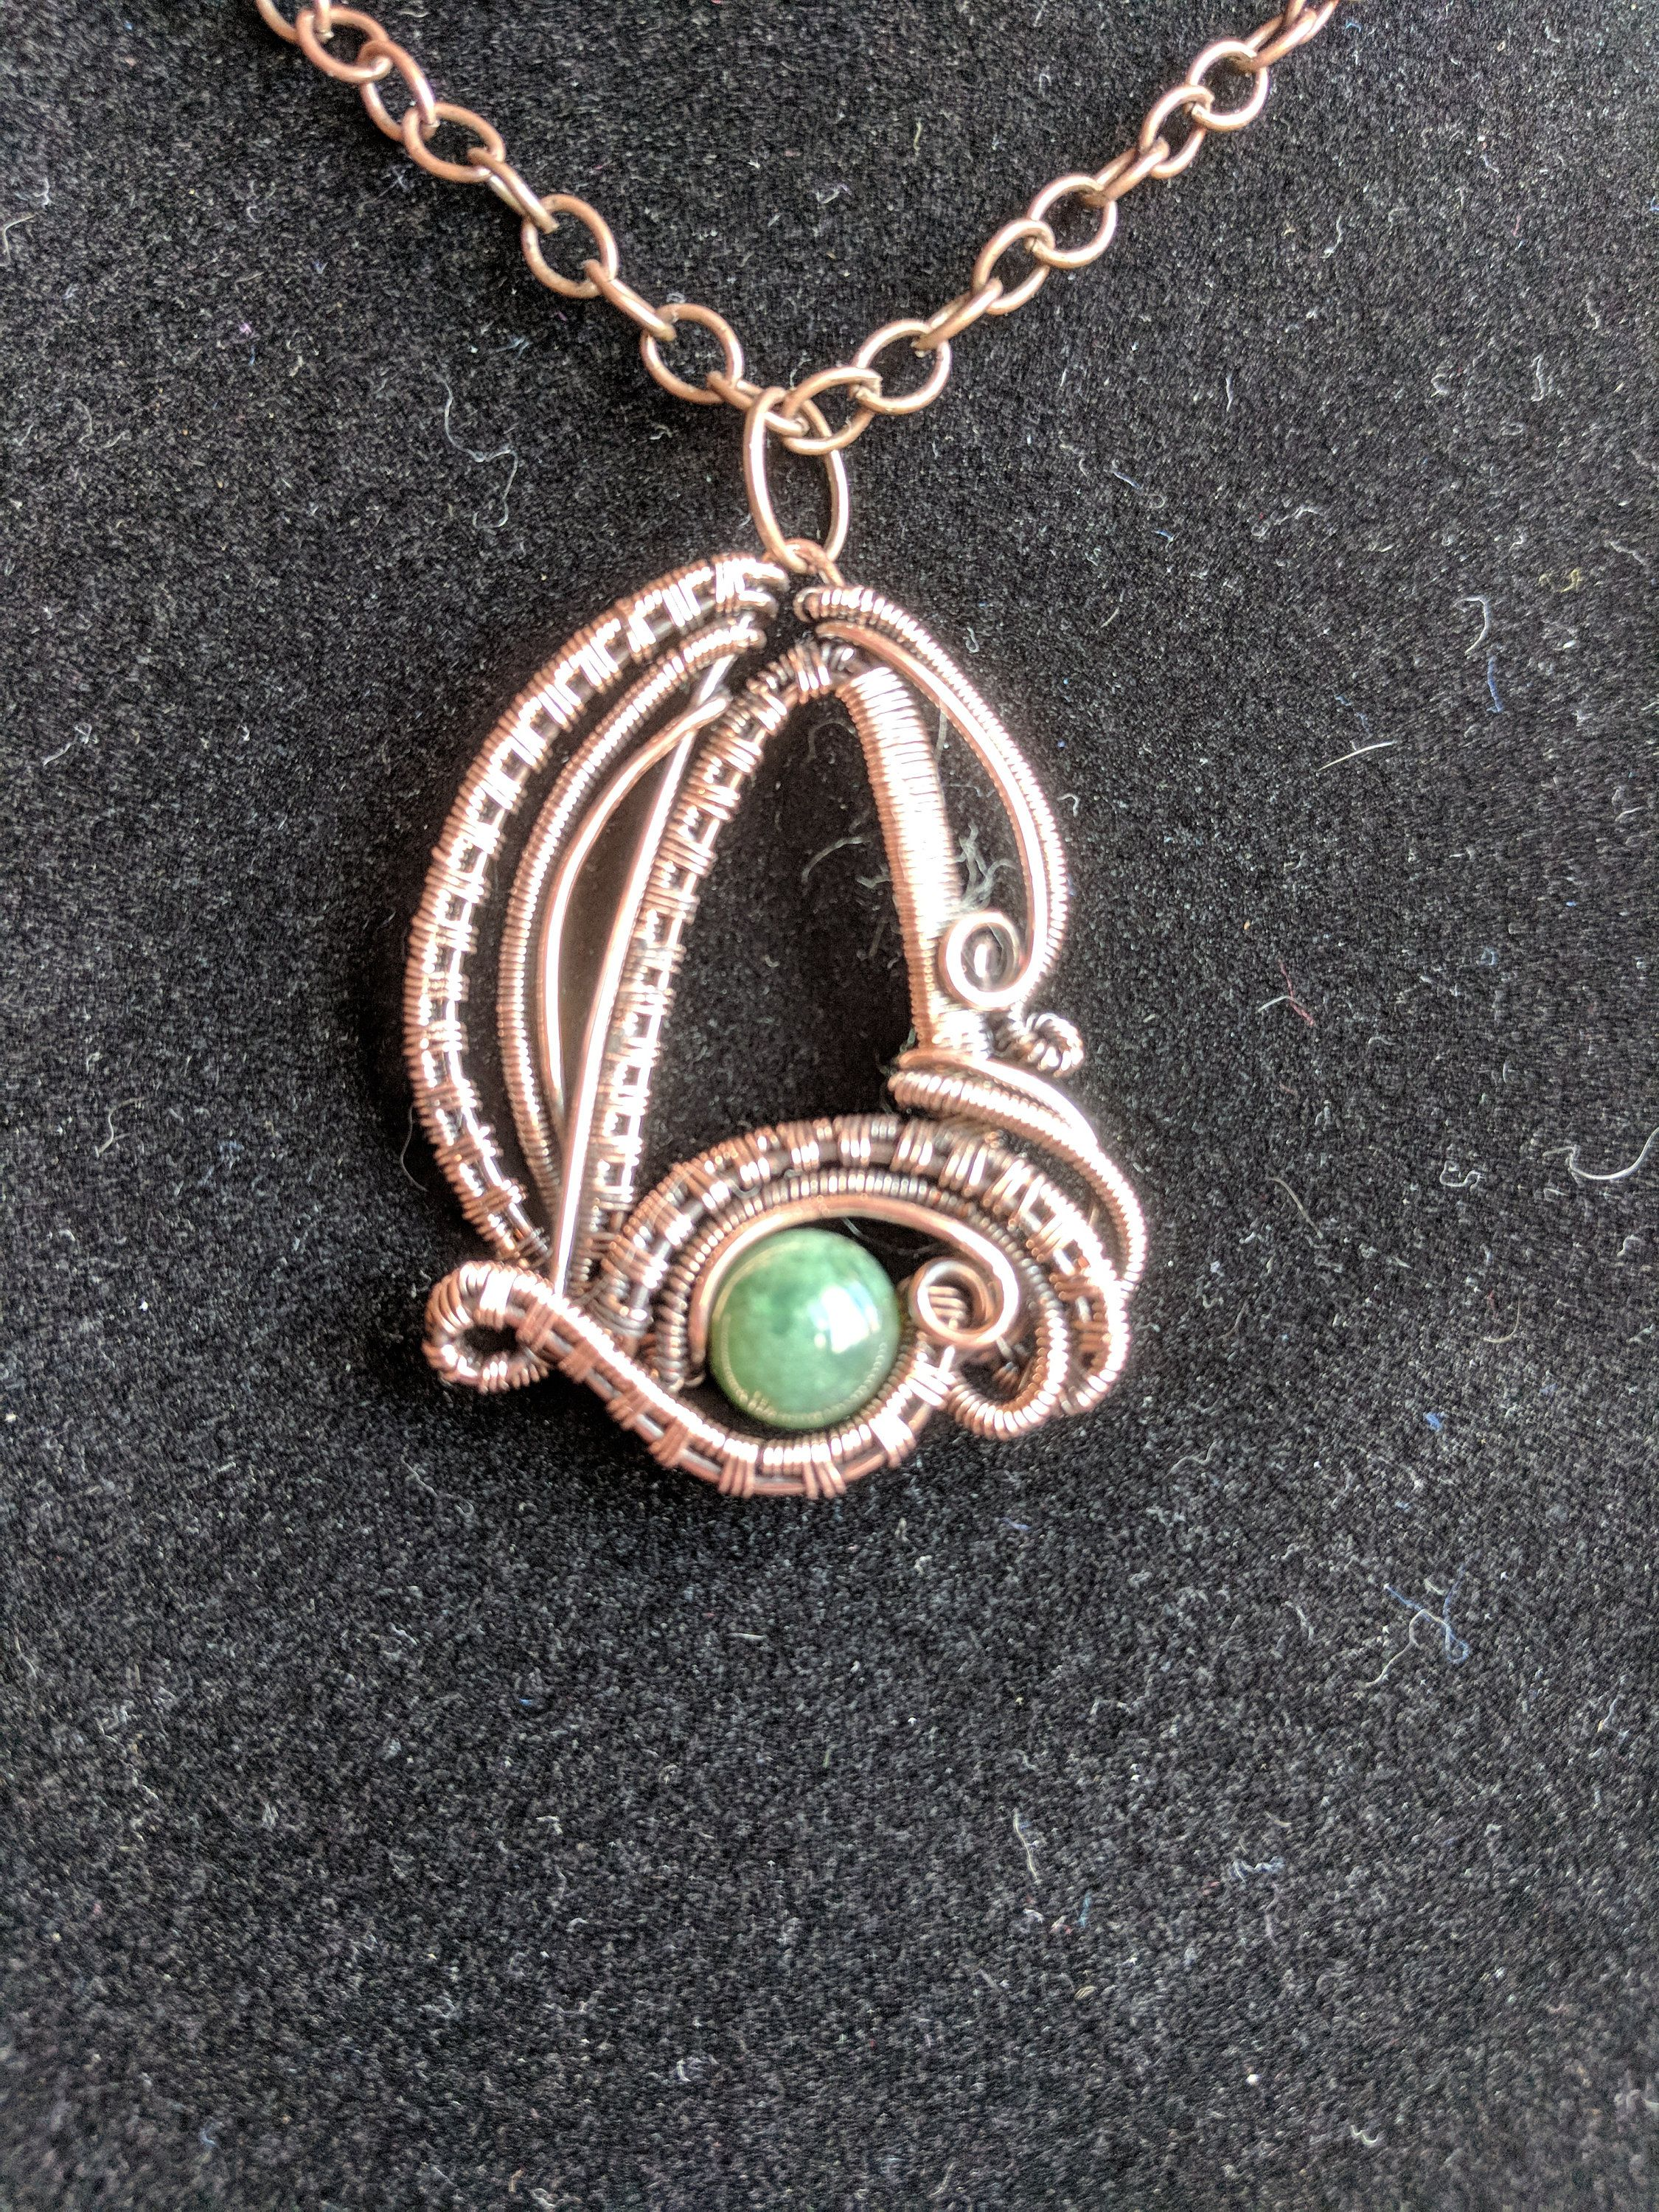 Third eye pendant third eye necklace copper wrap third eye wire third eye pendant third eye necklace copper wrap third eye wire wrap pendant gift for girlfriend gift for her gift for mom mozeypictures Image collections